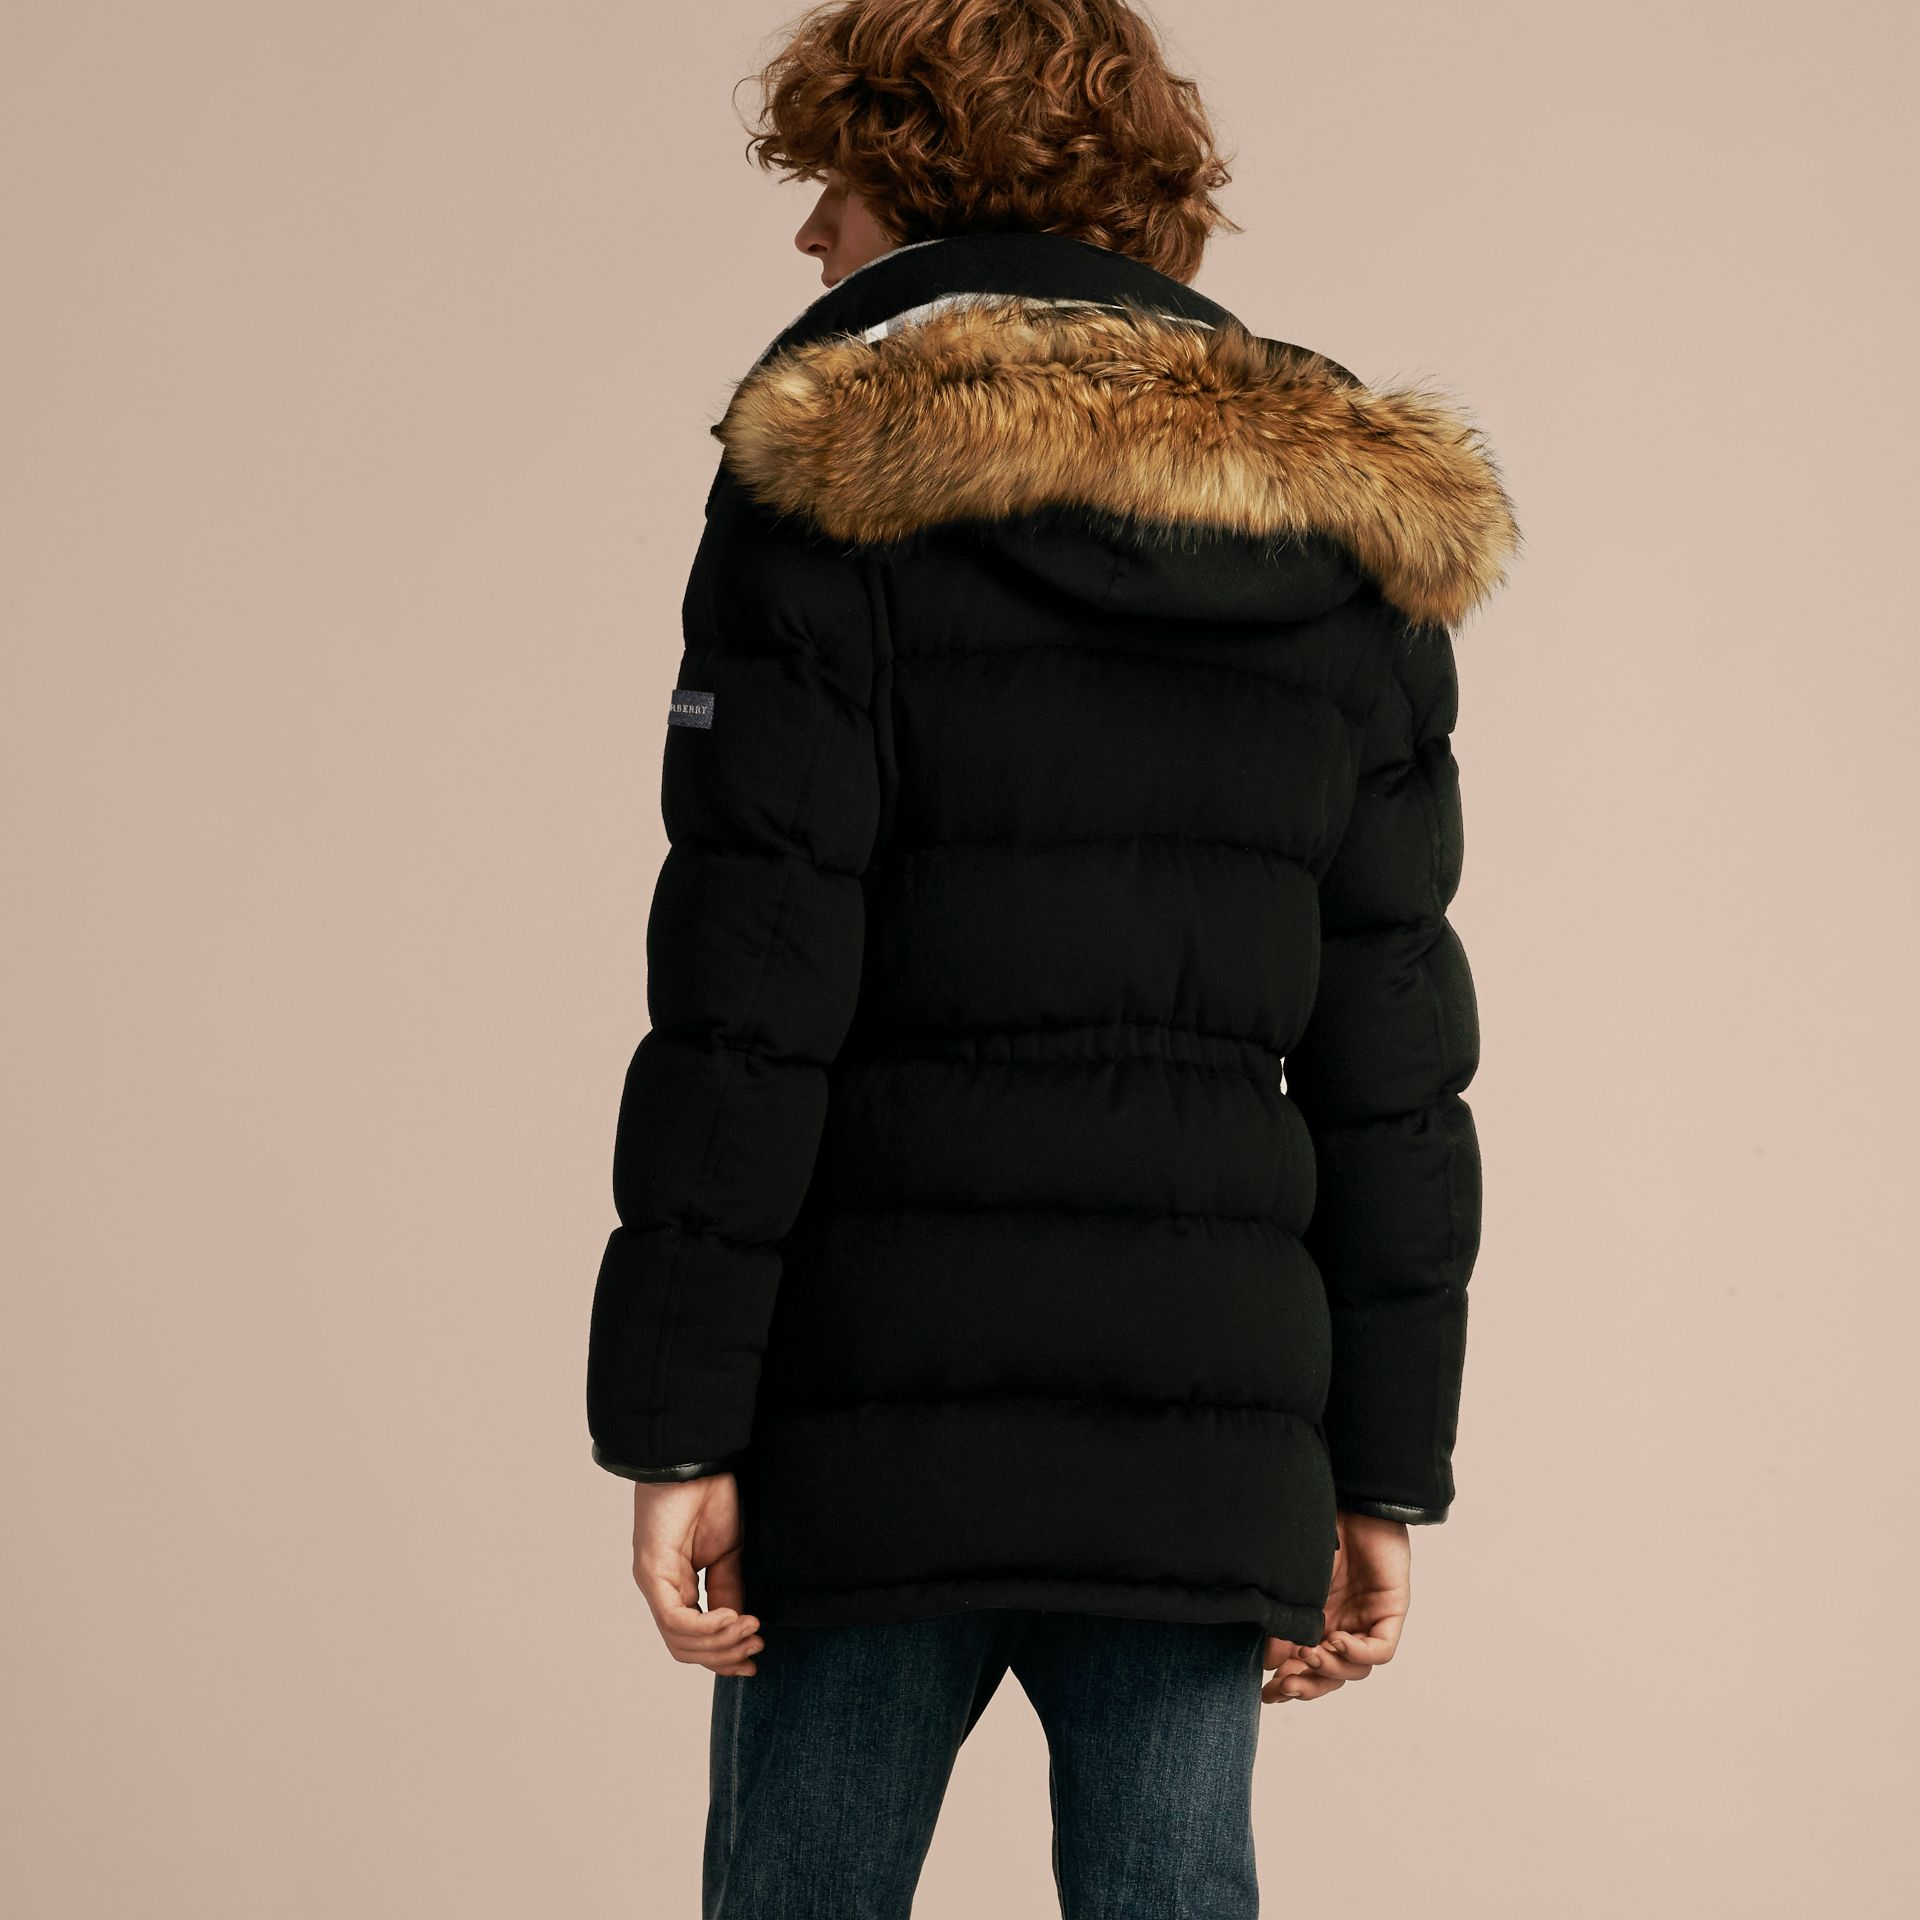 Black Down-filled Cashmere Parka with Detachable Fur Trim Black - gallery image 3